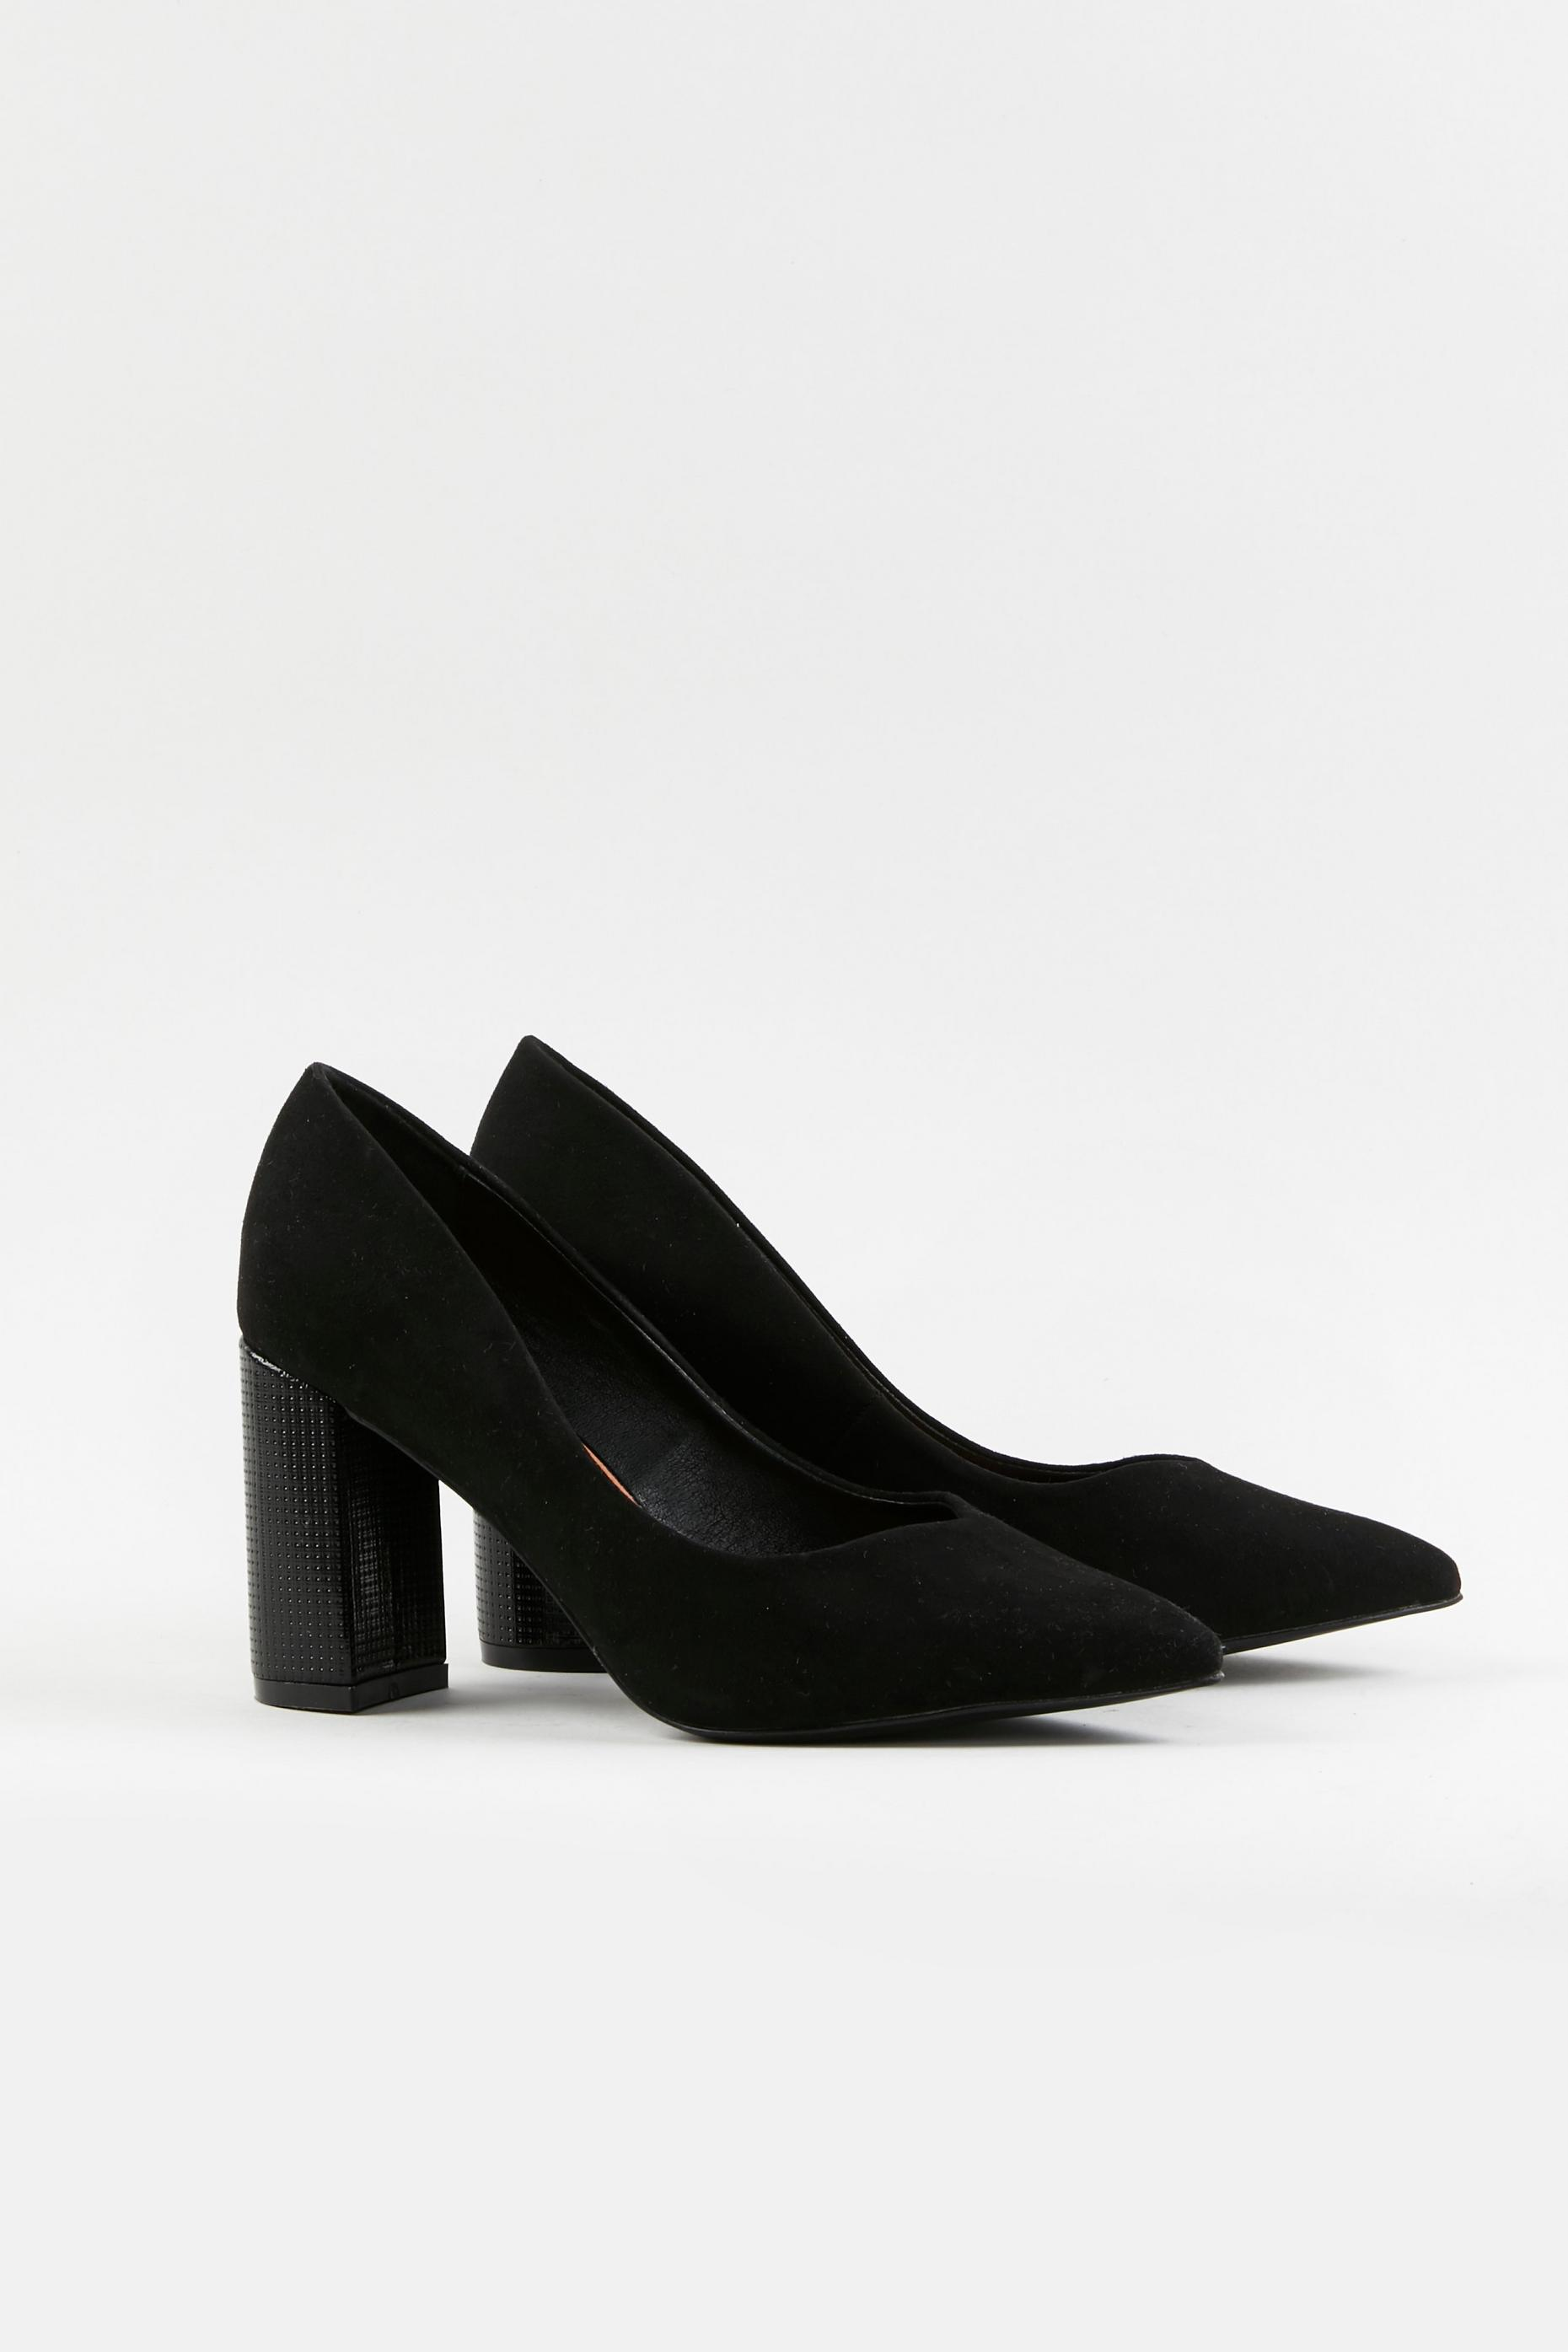 WIDE FIT Black Block Heel Shoes